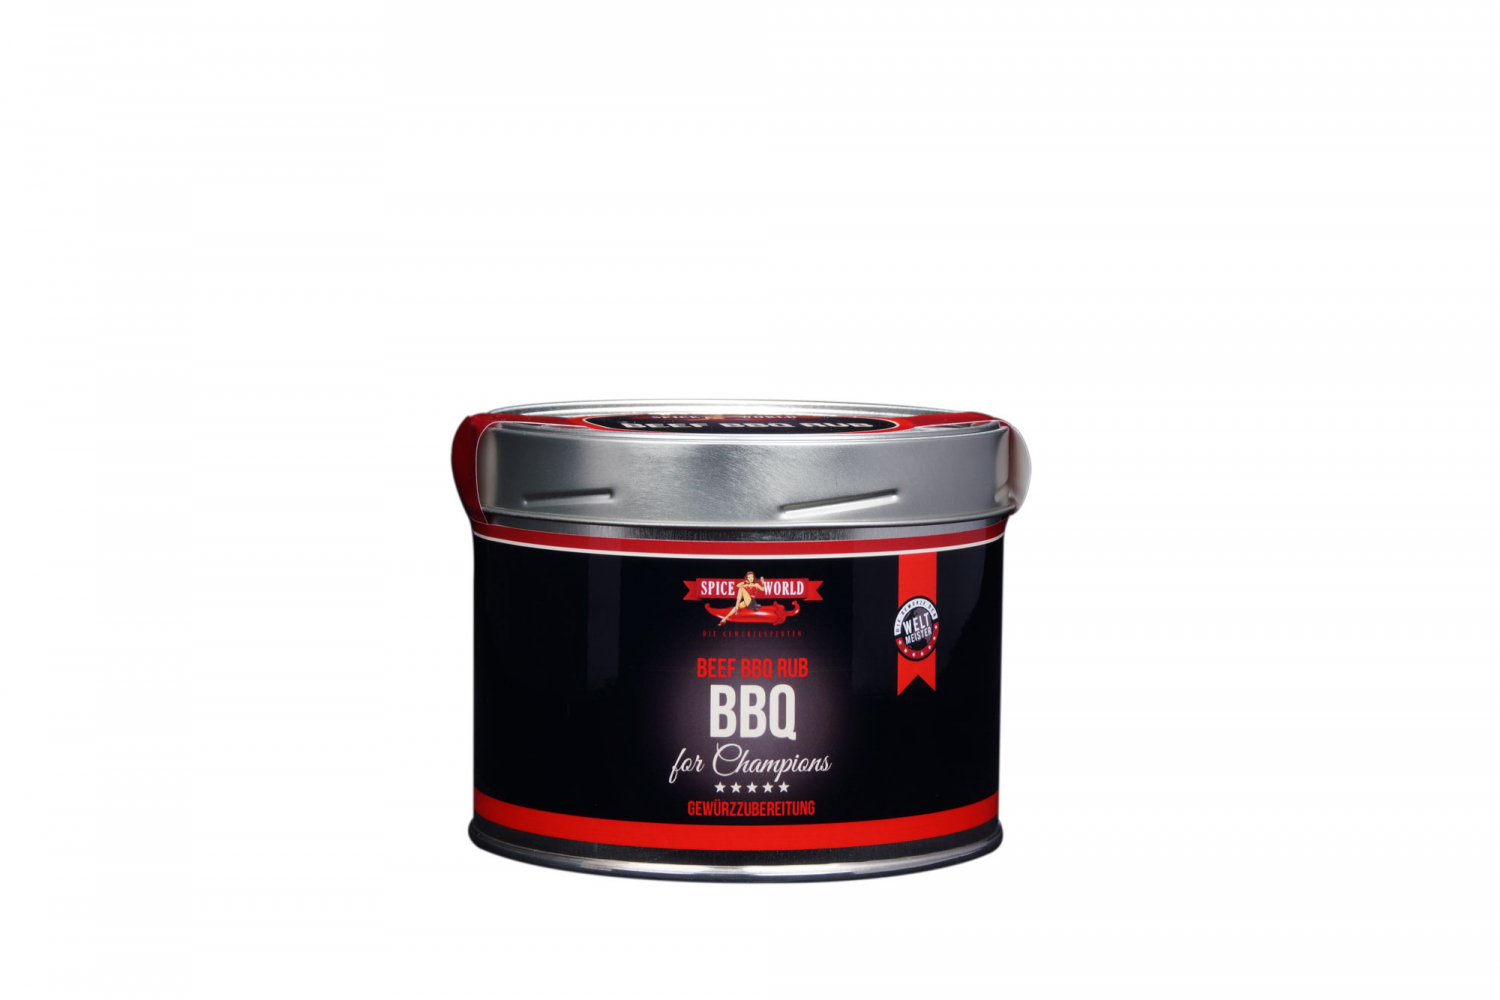 Barbecue-for-Champions - BBQ Beef-Rub, 550ml Gastro-Dose